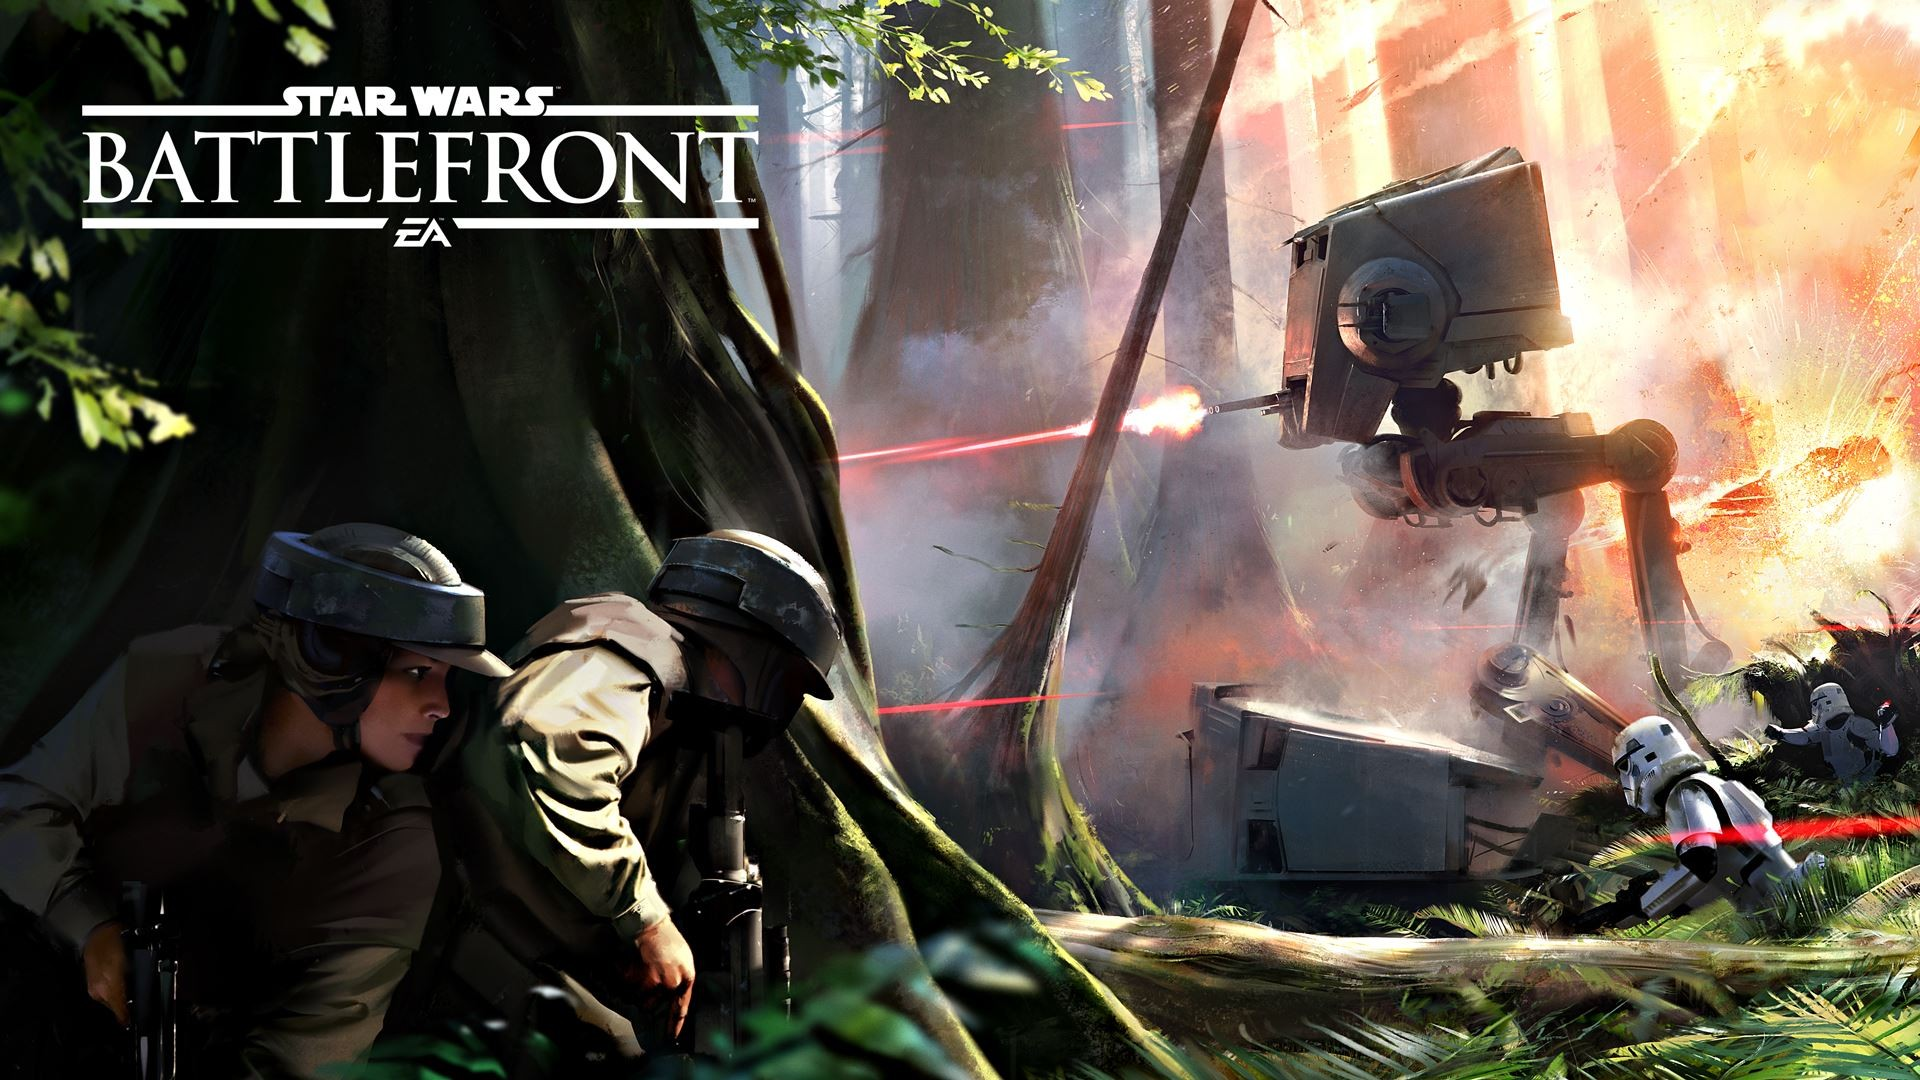 General 1920x1080 Star Wars Star Wars: Battlefront Endor AT-ST Battle of Endor Rebel Alliance stormtrooper AT-ST Walker Storm Troopers Imperial Stormtrooper